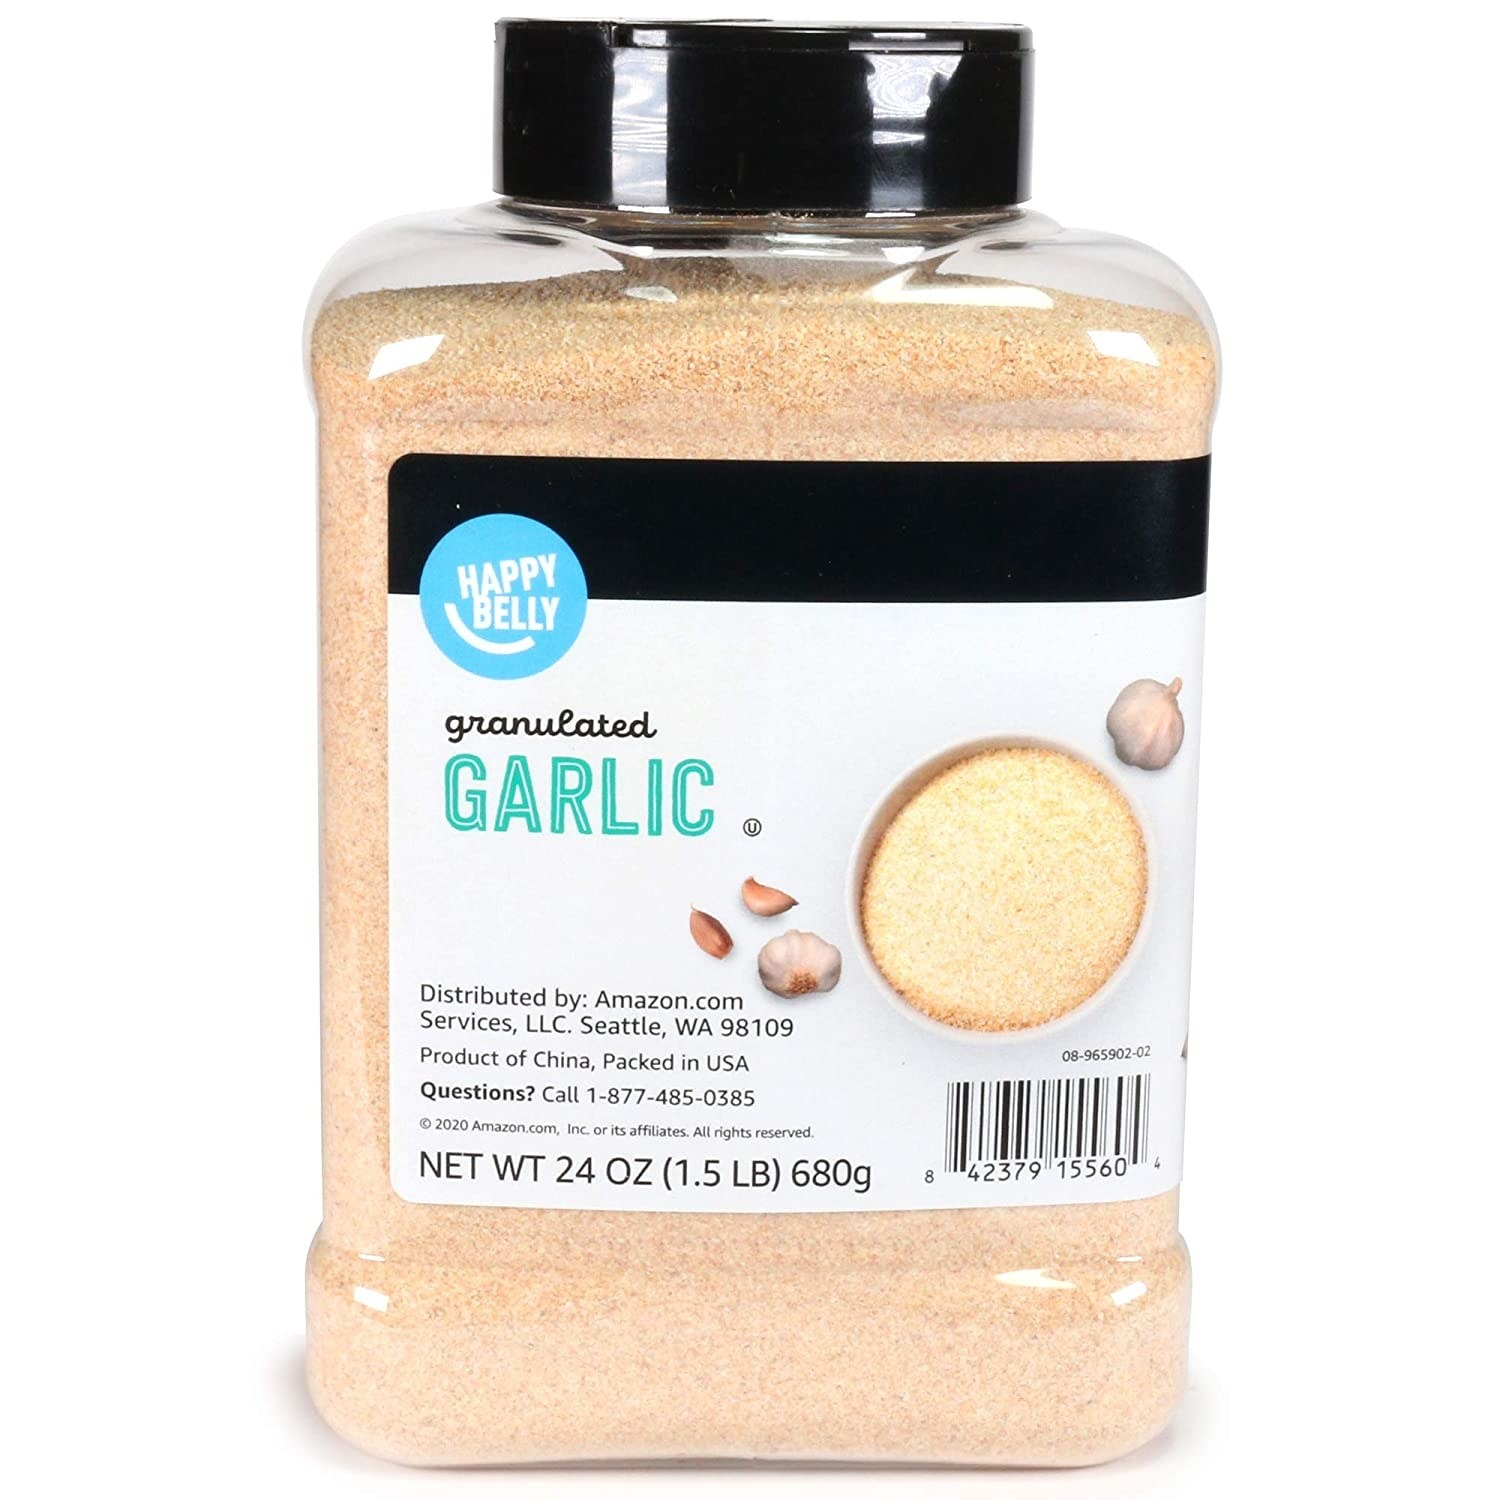 A large container of Happy Belly Granulated Garlic.